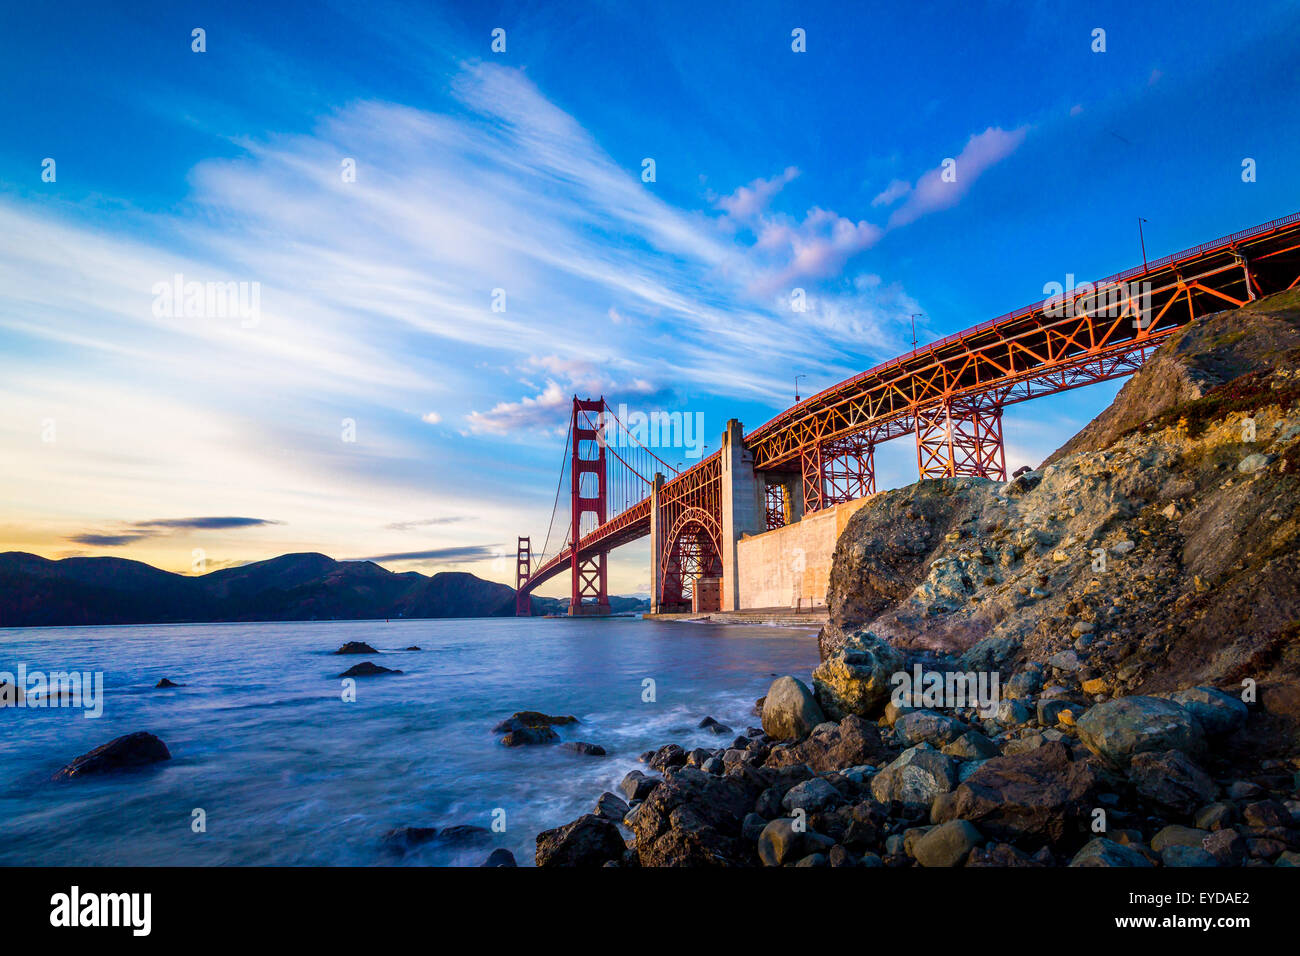 San Francisco Golden Gate Bridge al tramonto Immagini Stock